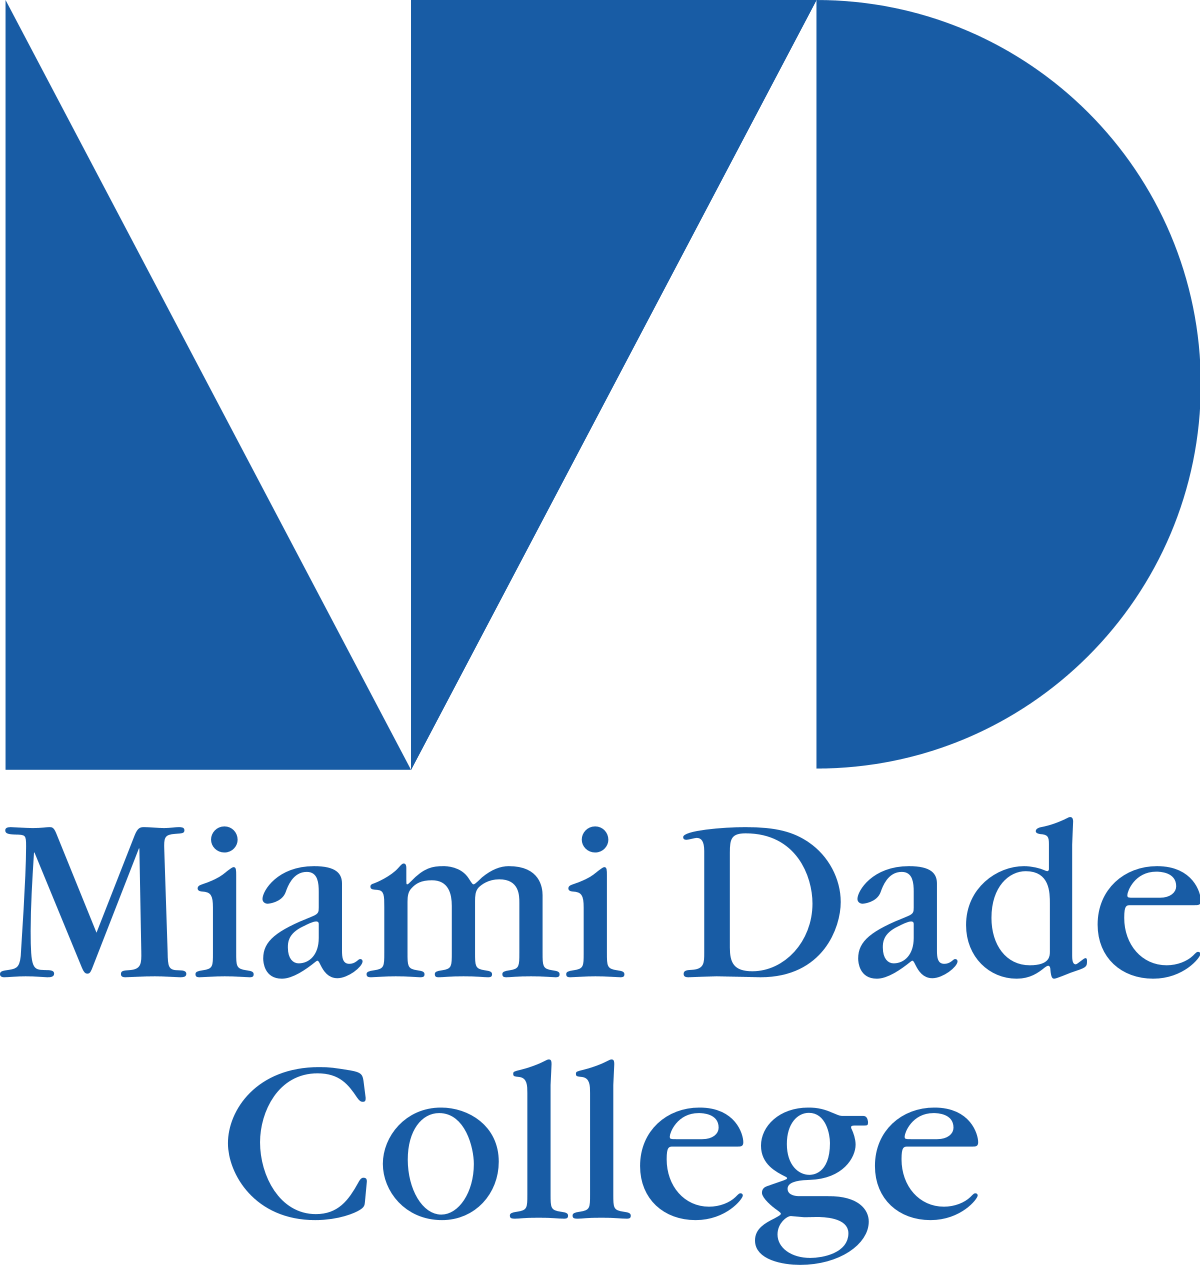 Miami Dade College - Wikipedia Throughout First Day Of Class Miami Dade College Fall 2020